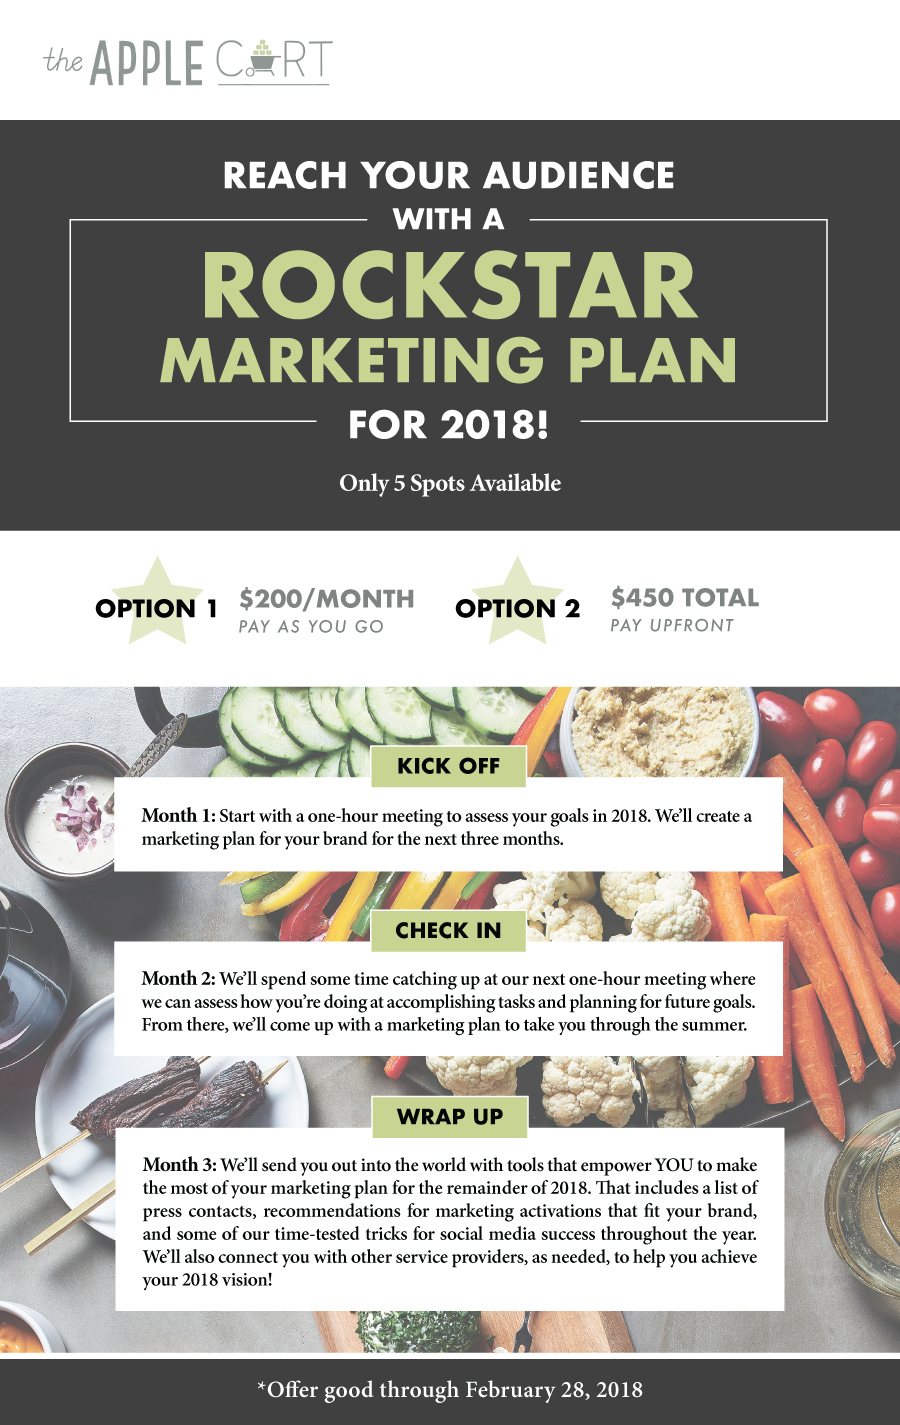 TheAppleCart_MarketingPlan_v3.jpg